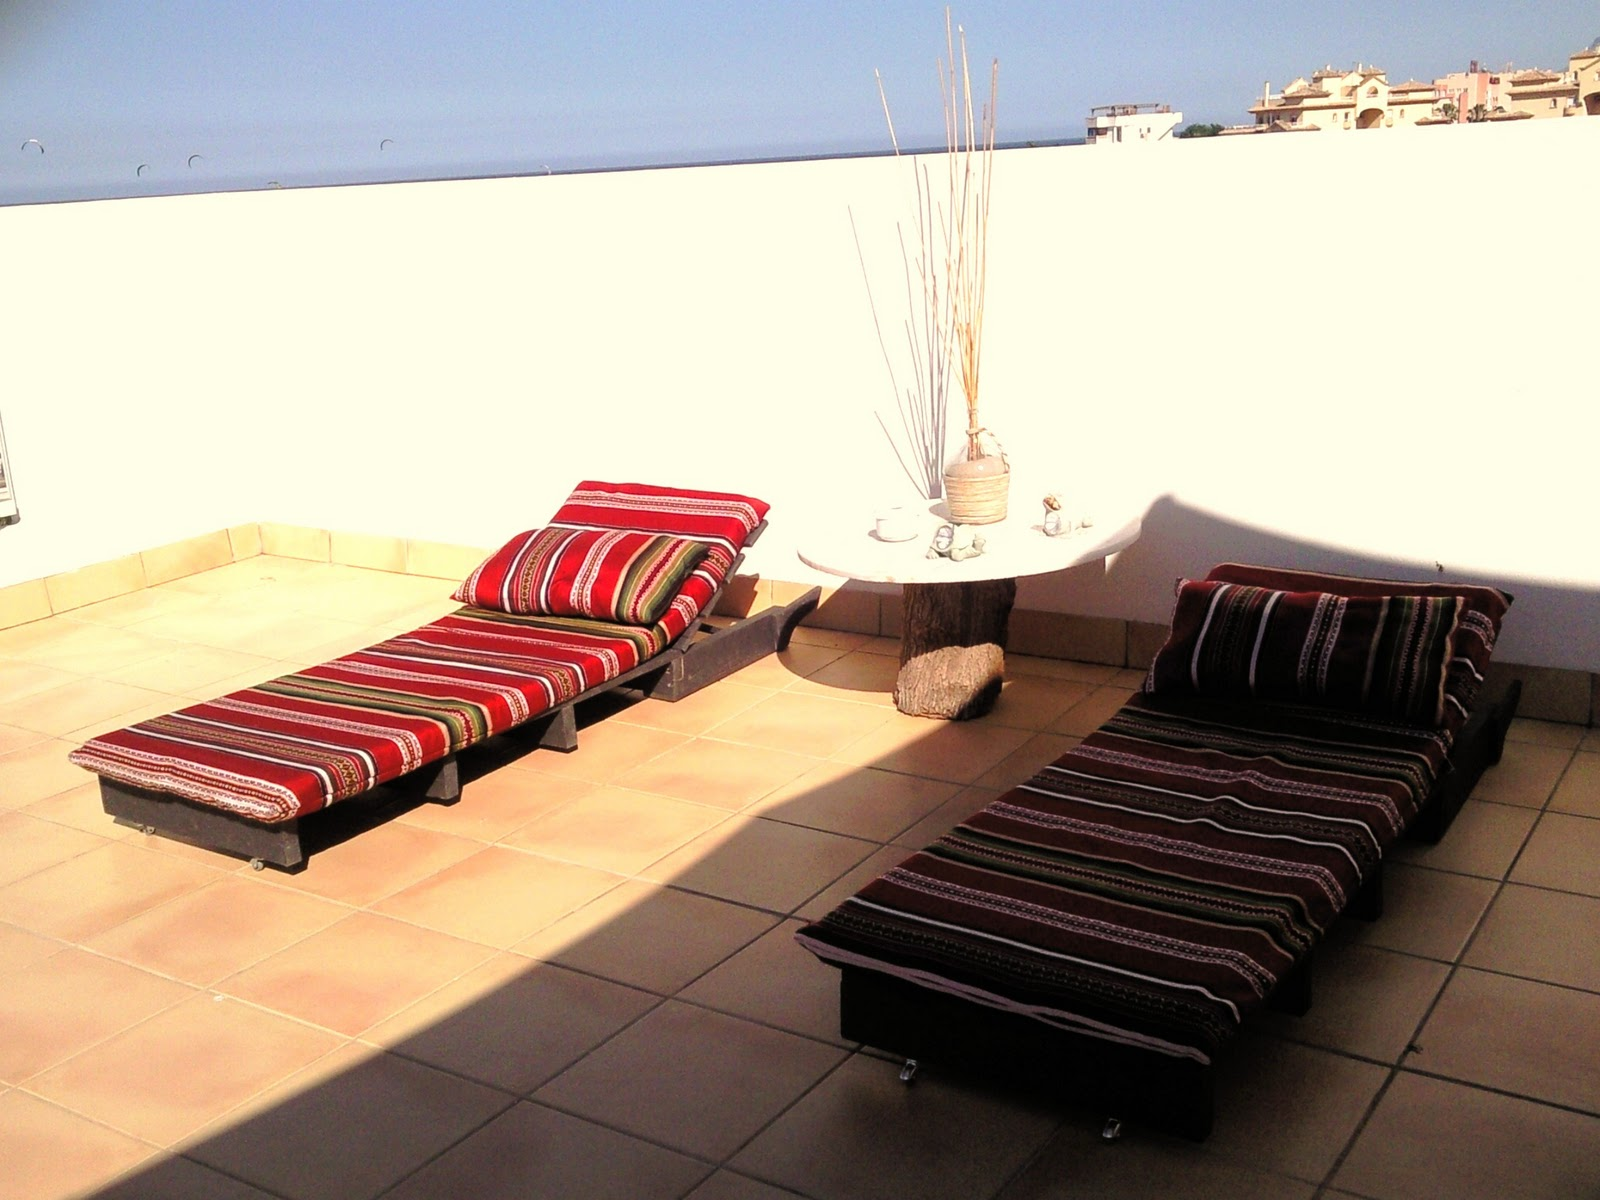 Muebles de exterior tipo chill out - Muebles chill out baratos ...